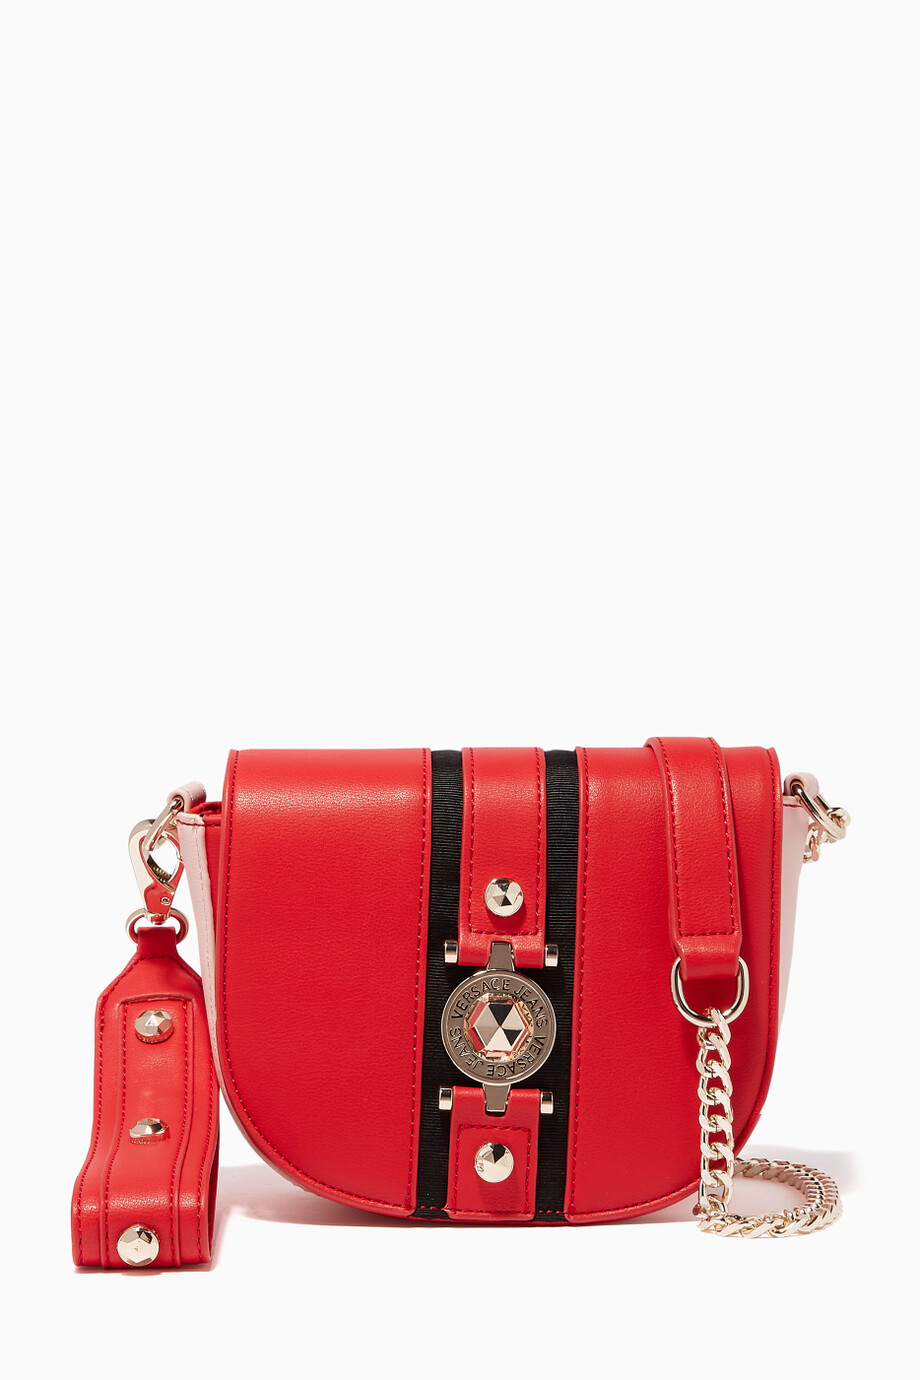 b76c6a535b9 Shop Versace Jeans Red Chain Strap Shoulder Bag for Women   Ounass UAE